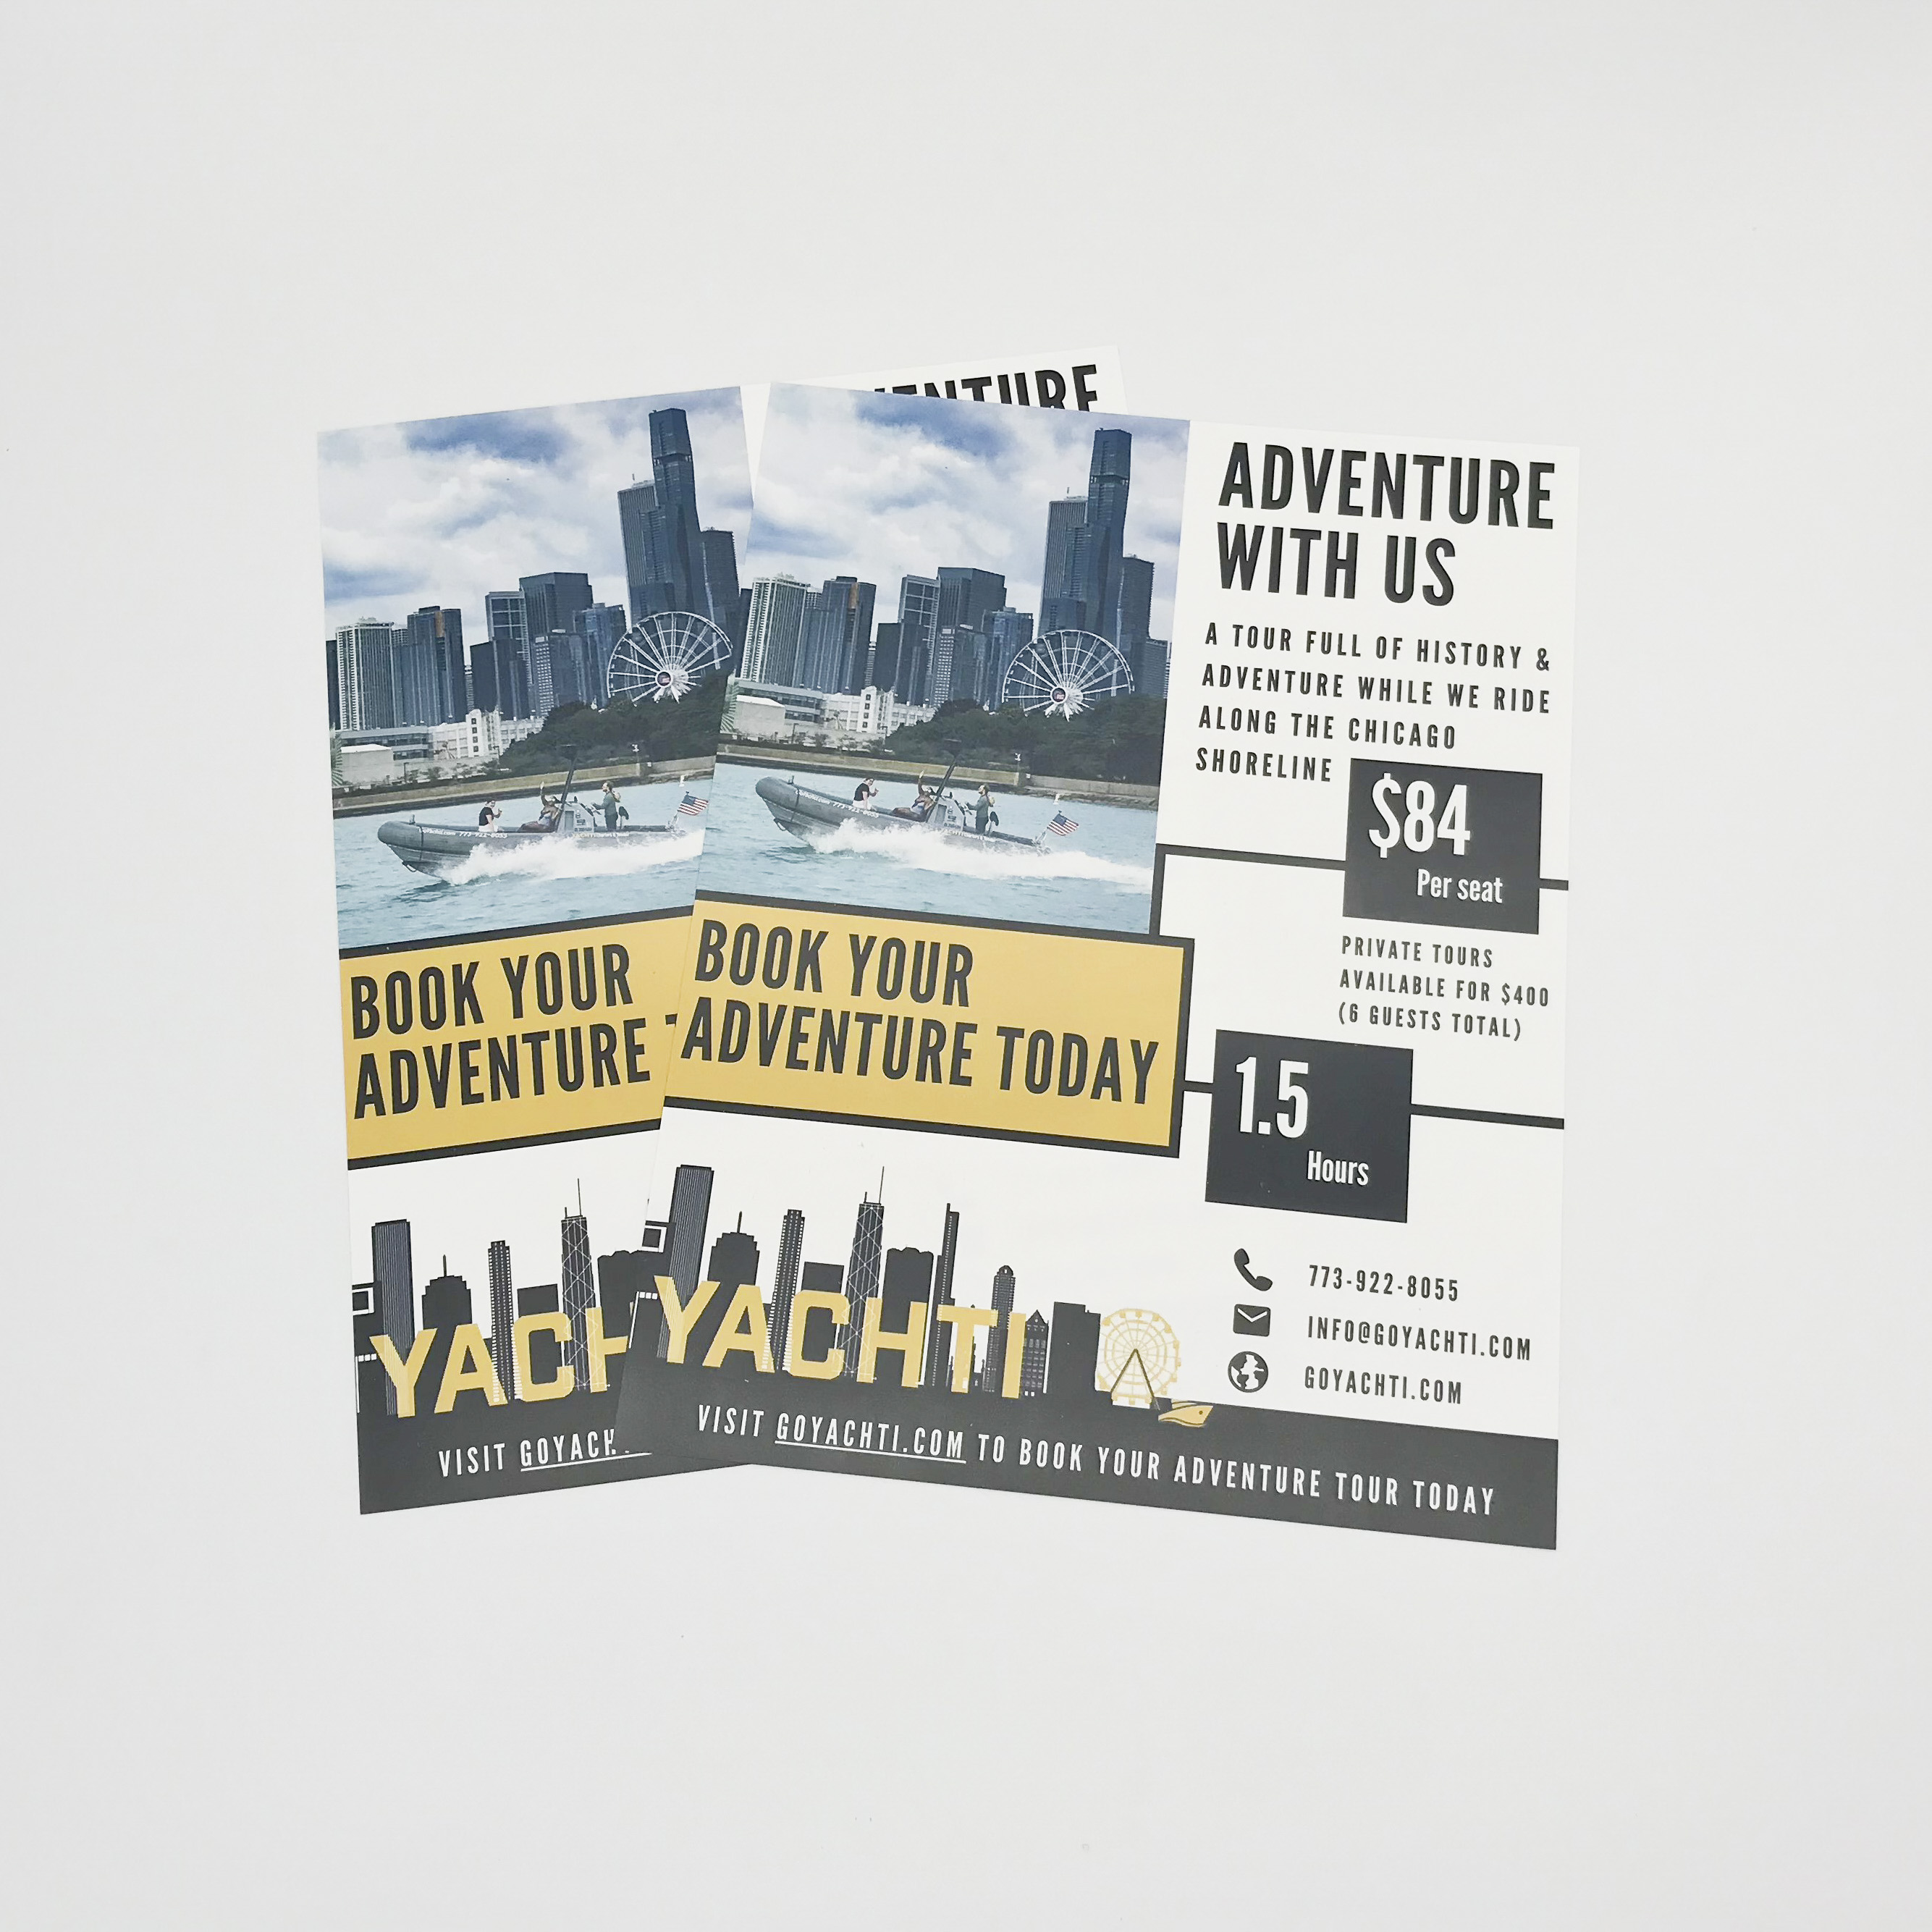 Posters for a boat rental, printed on waterproof paper